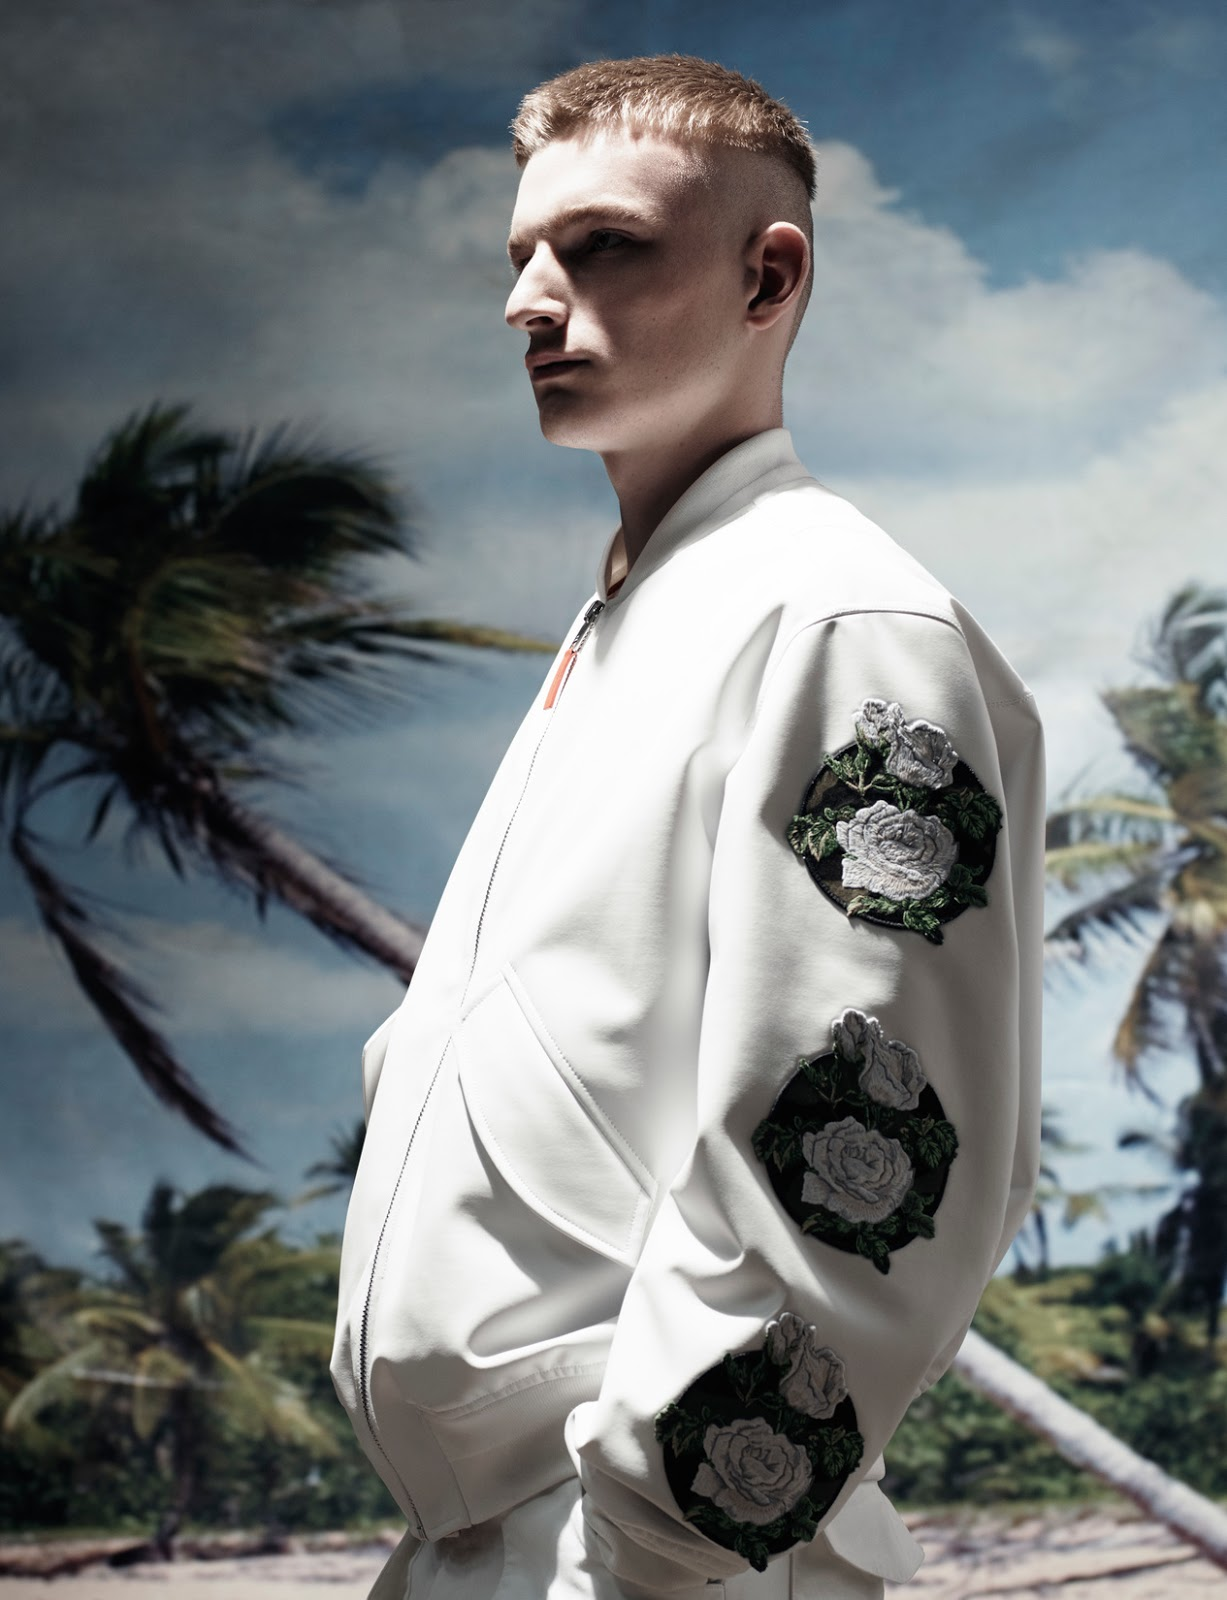 i-D-2015-Fashion-Editorial-Willy-Vanderperre-Photography-004.jpg